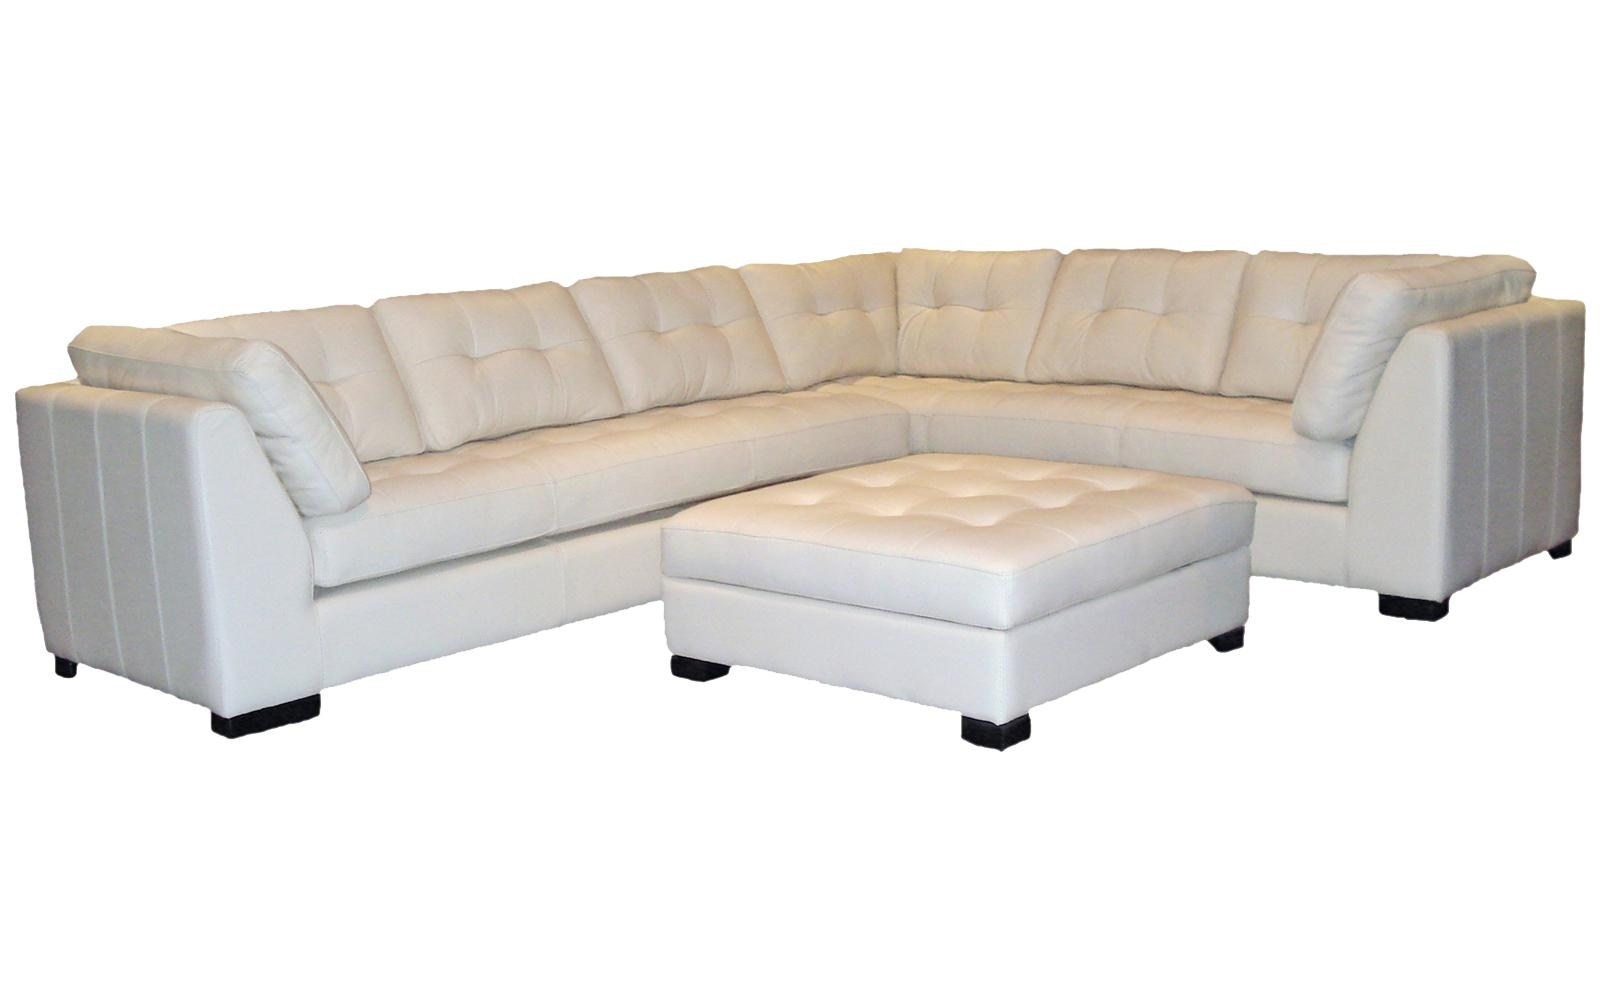 Newport Sofa Available – Omnia Leather Inside Newport Sofas (View 2 of 20)